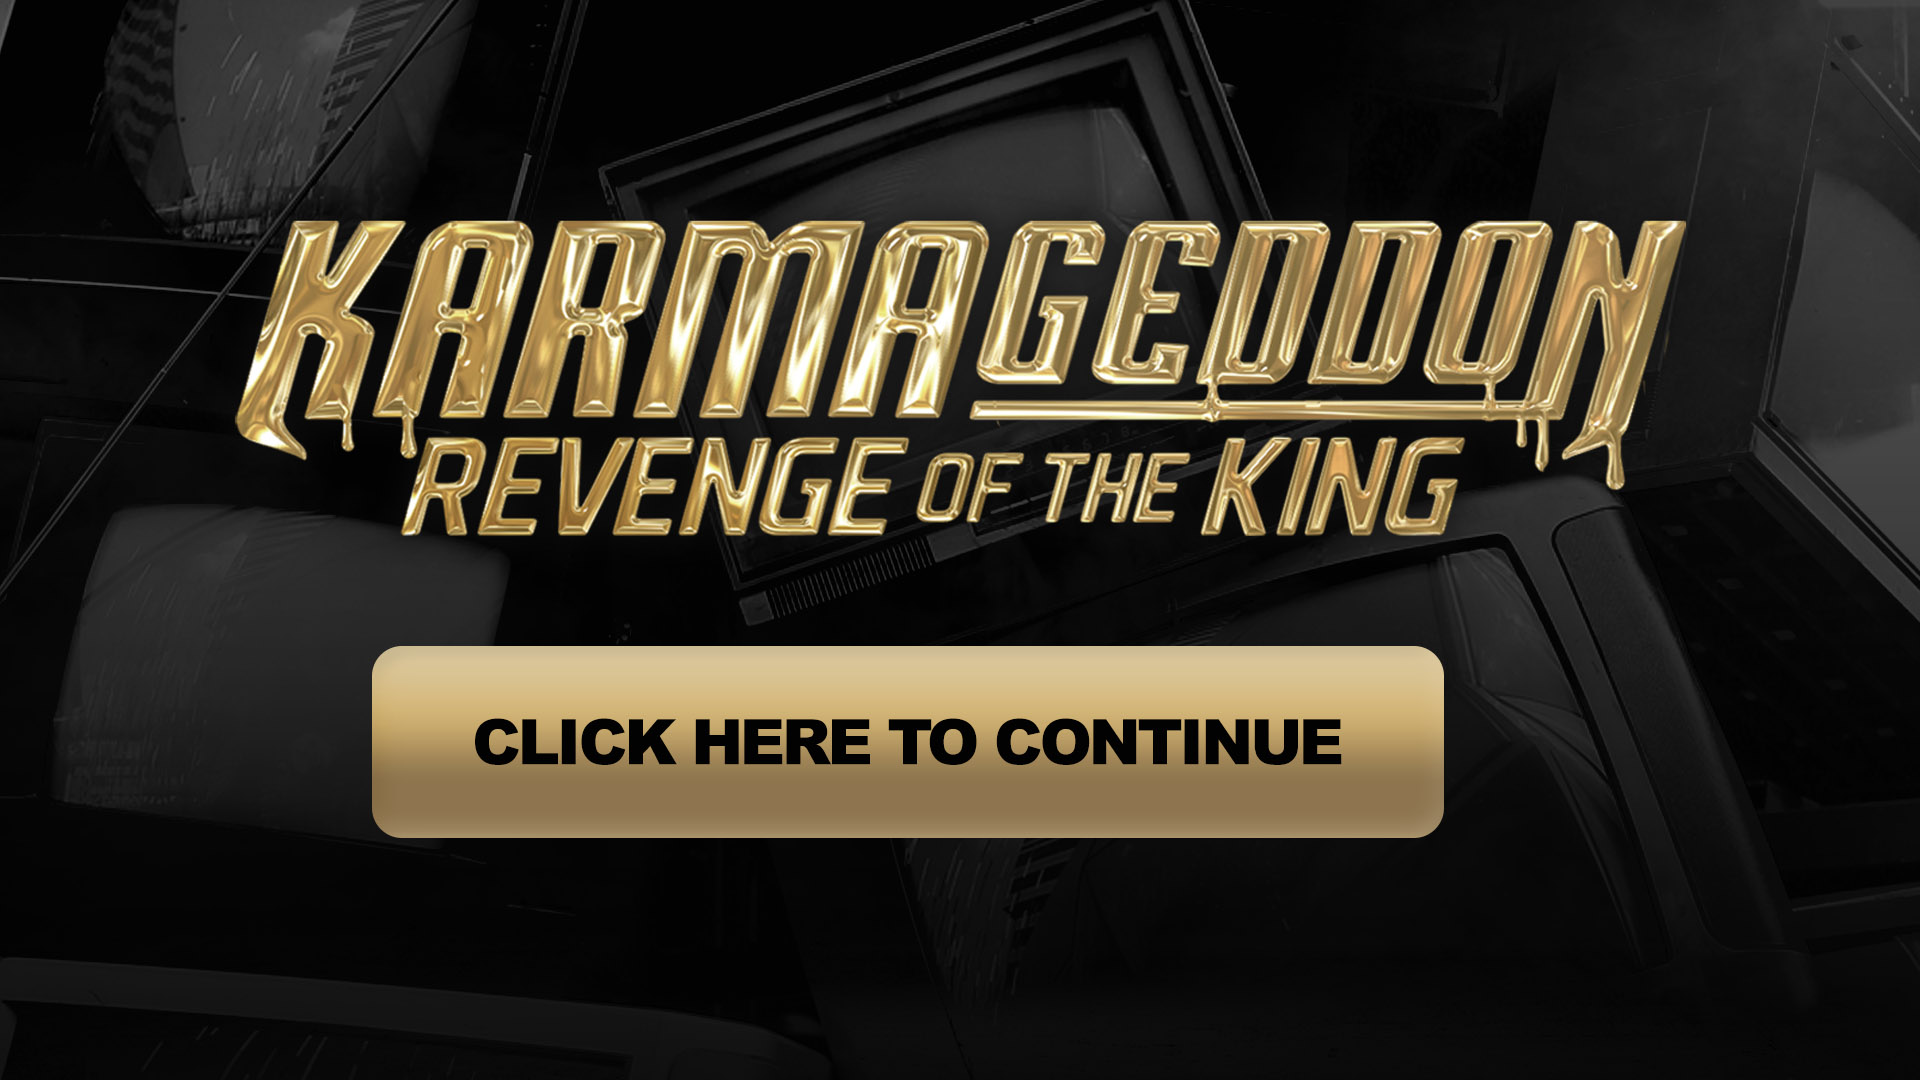 karmageddon revenge of the king